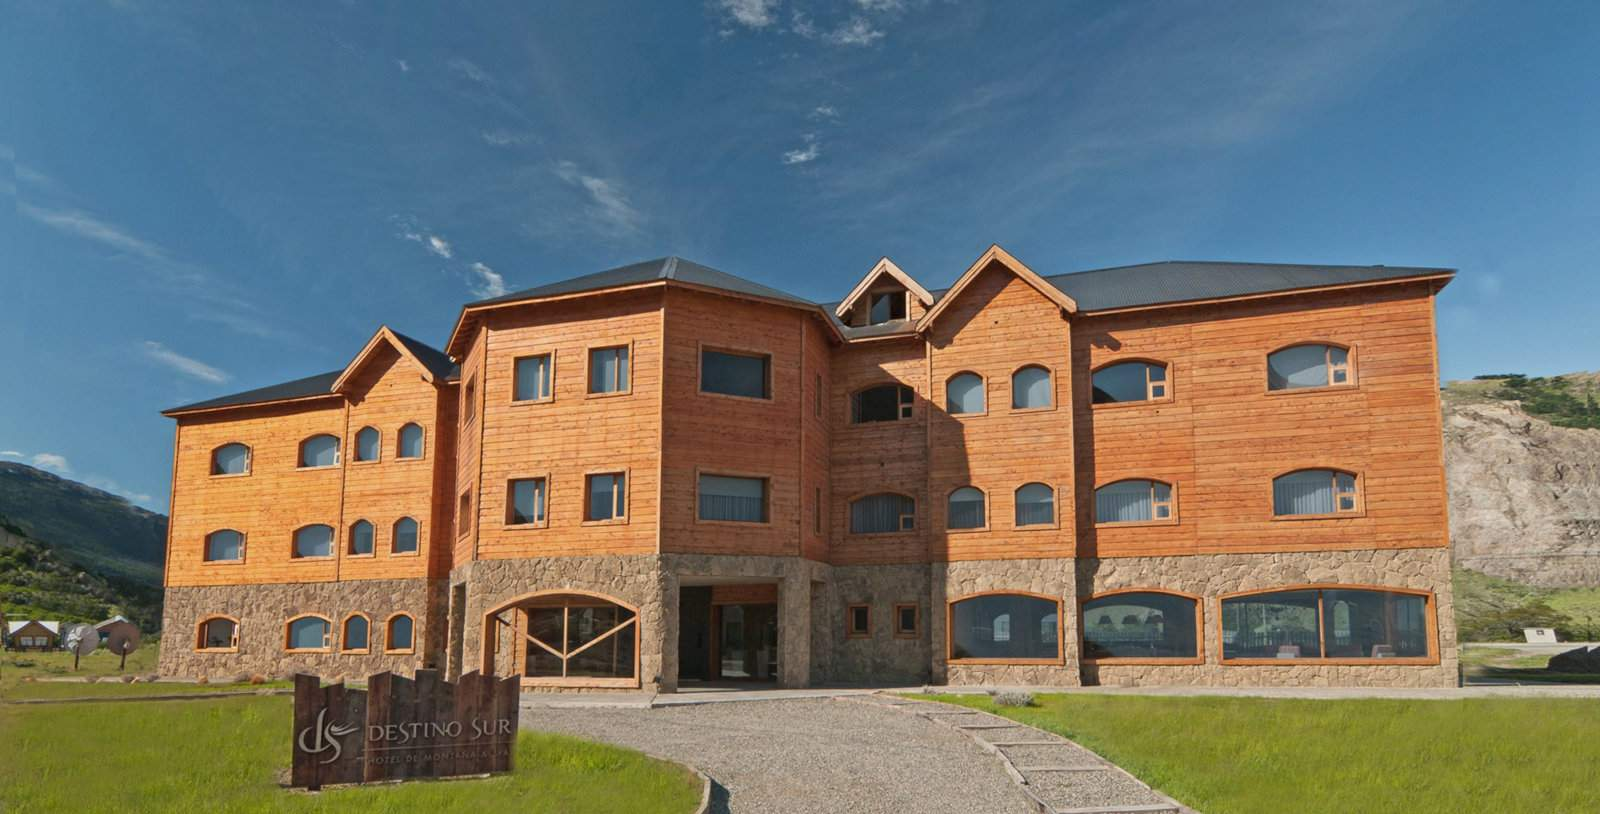 Destino Sur Hotel is a luxurious and gay friendly accommodation option in Patagonia.